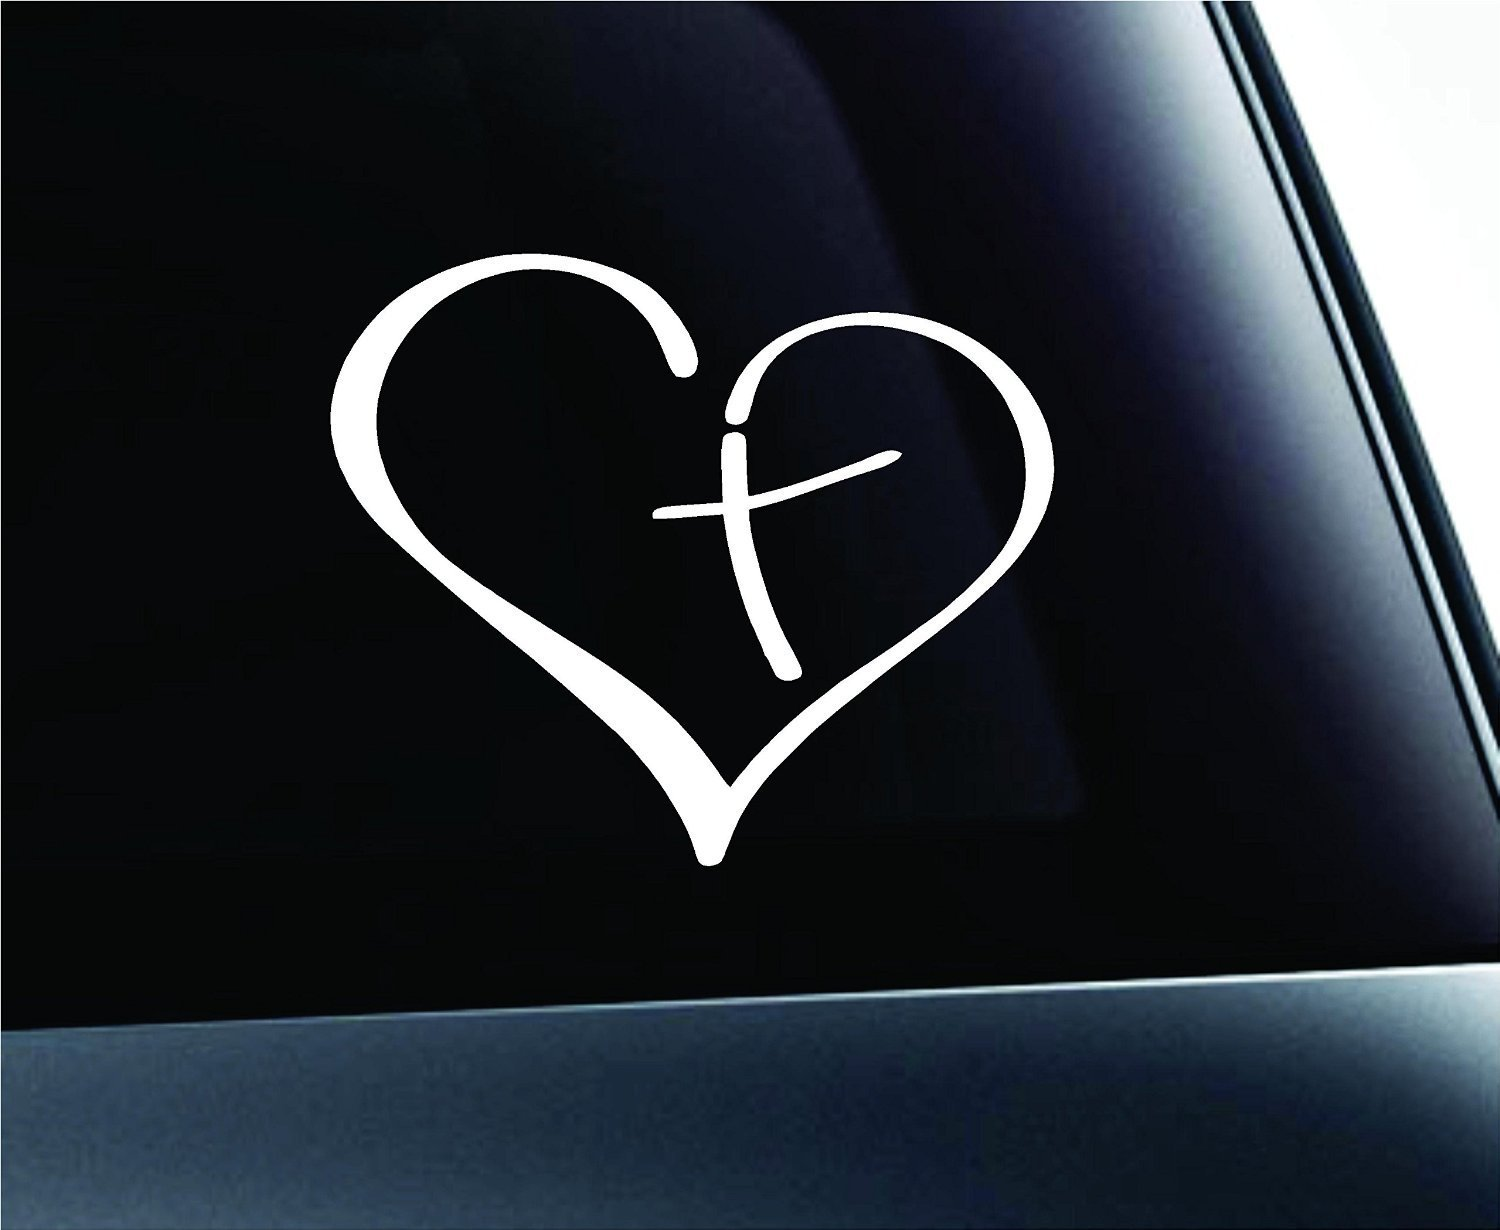 Heart With Cross In Center Car Decal Sticker Only 2 50